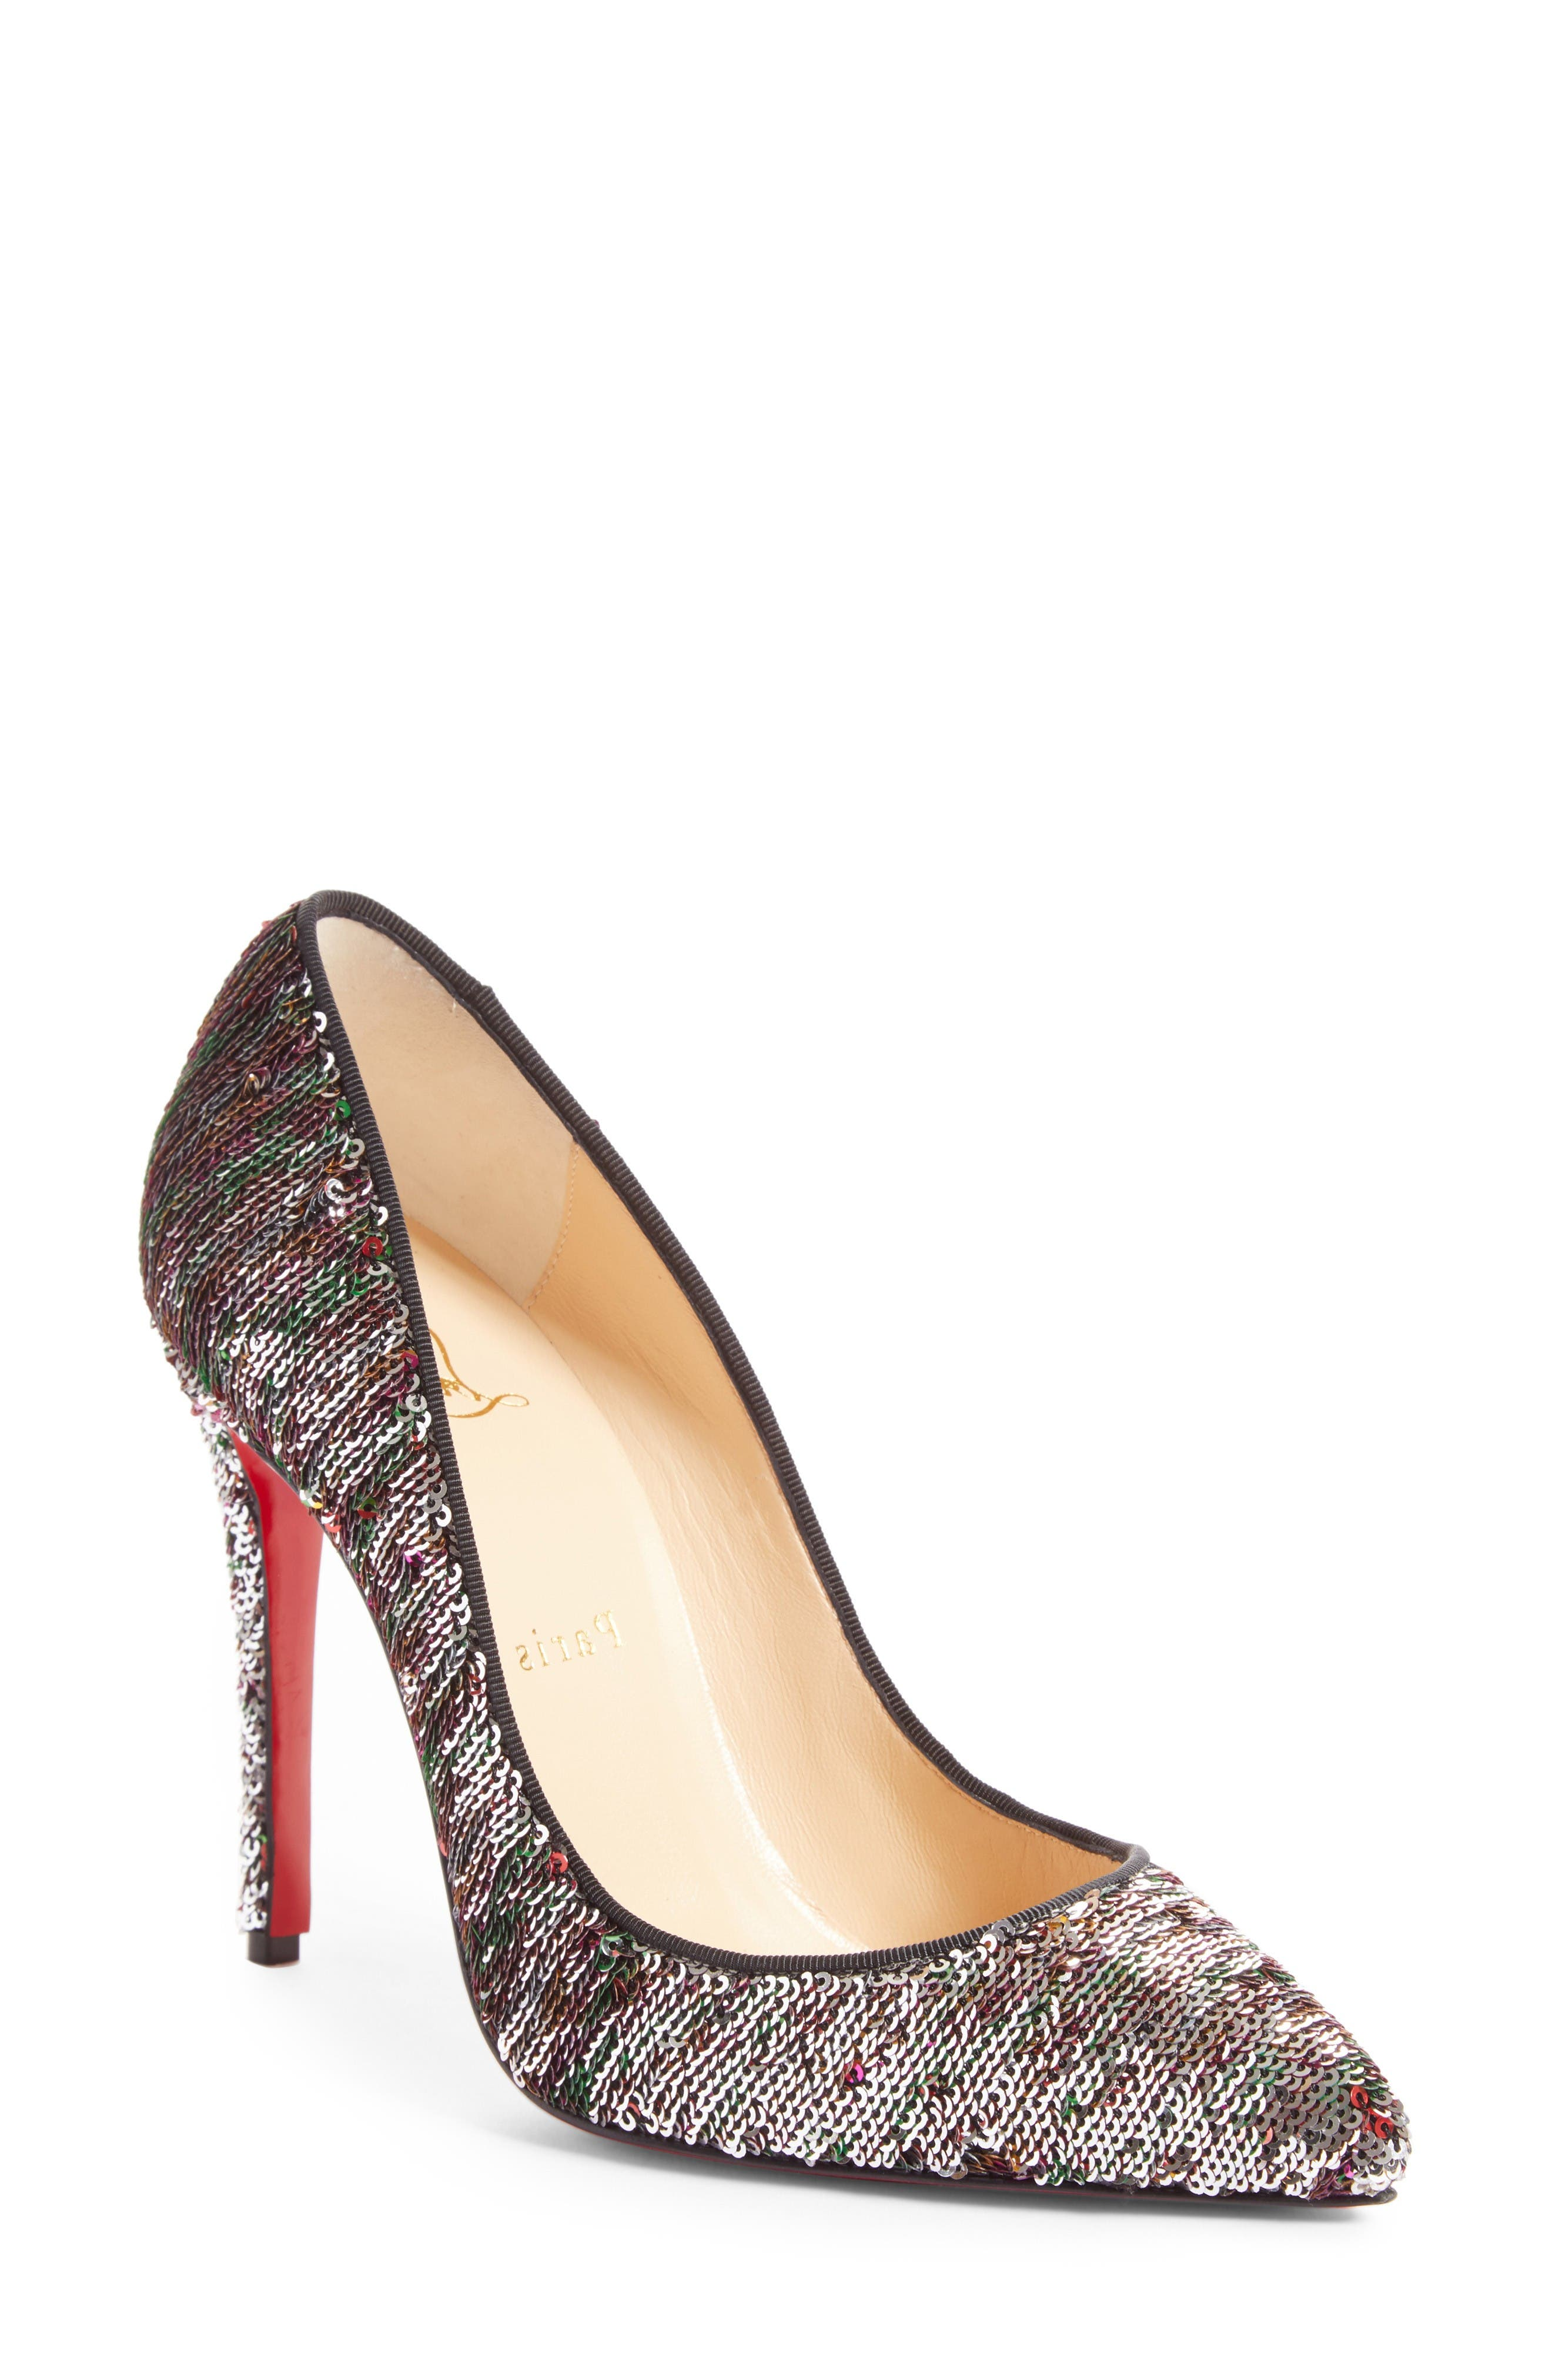 Pigalle Follies Sequin Pointy Toe Pump,                             Main thumbnail 1, color,                             Silver Sequin